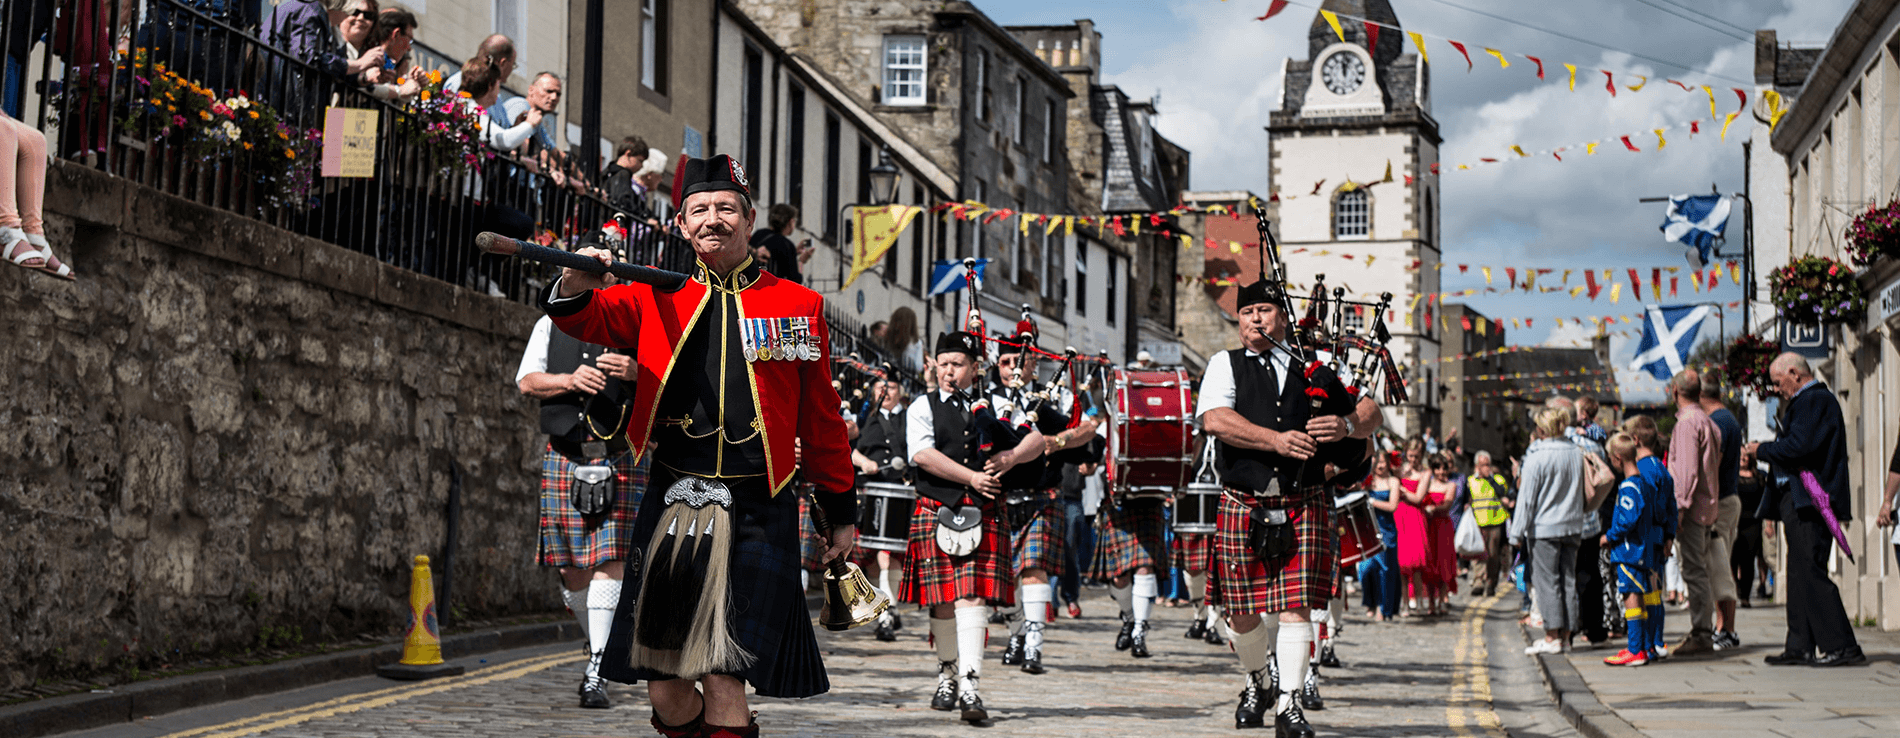 Pipers on Queensferry High Street – © Steven Hume – stevenhume@gmail.com